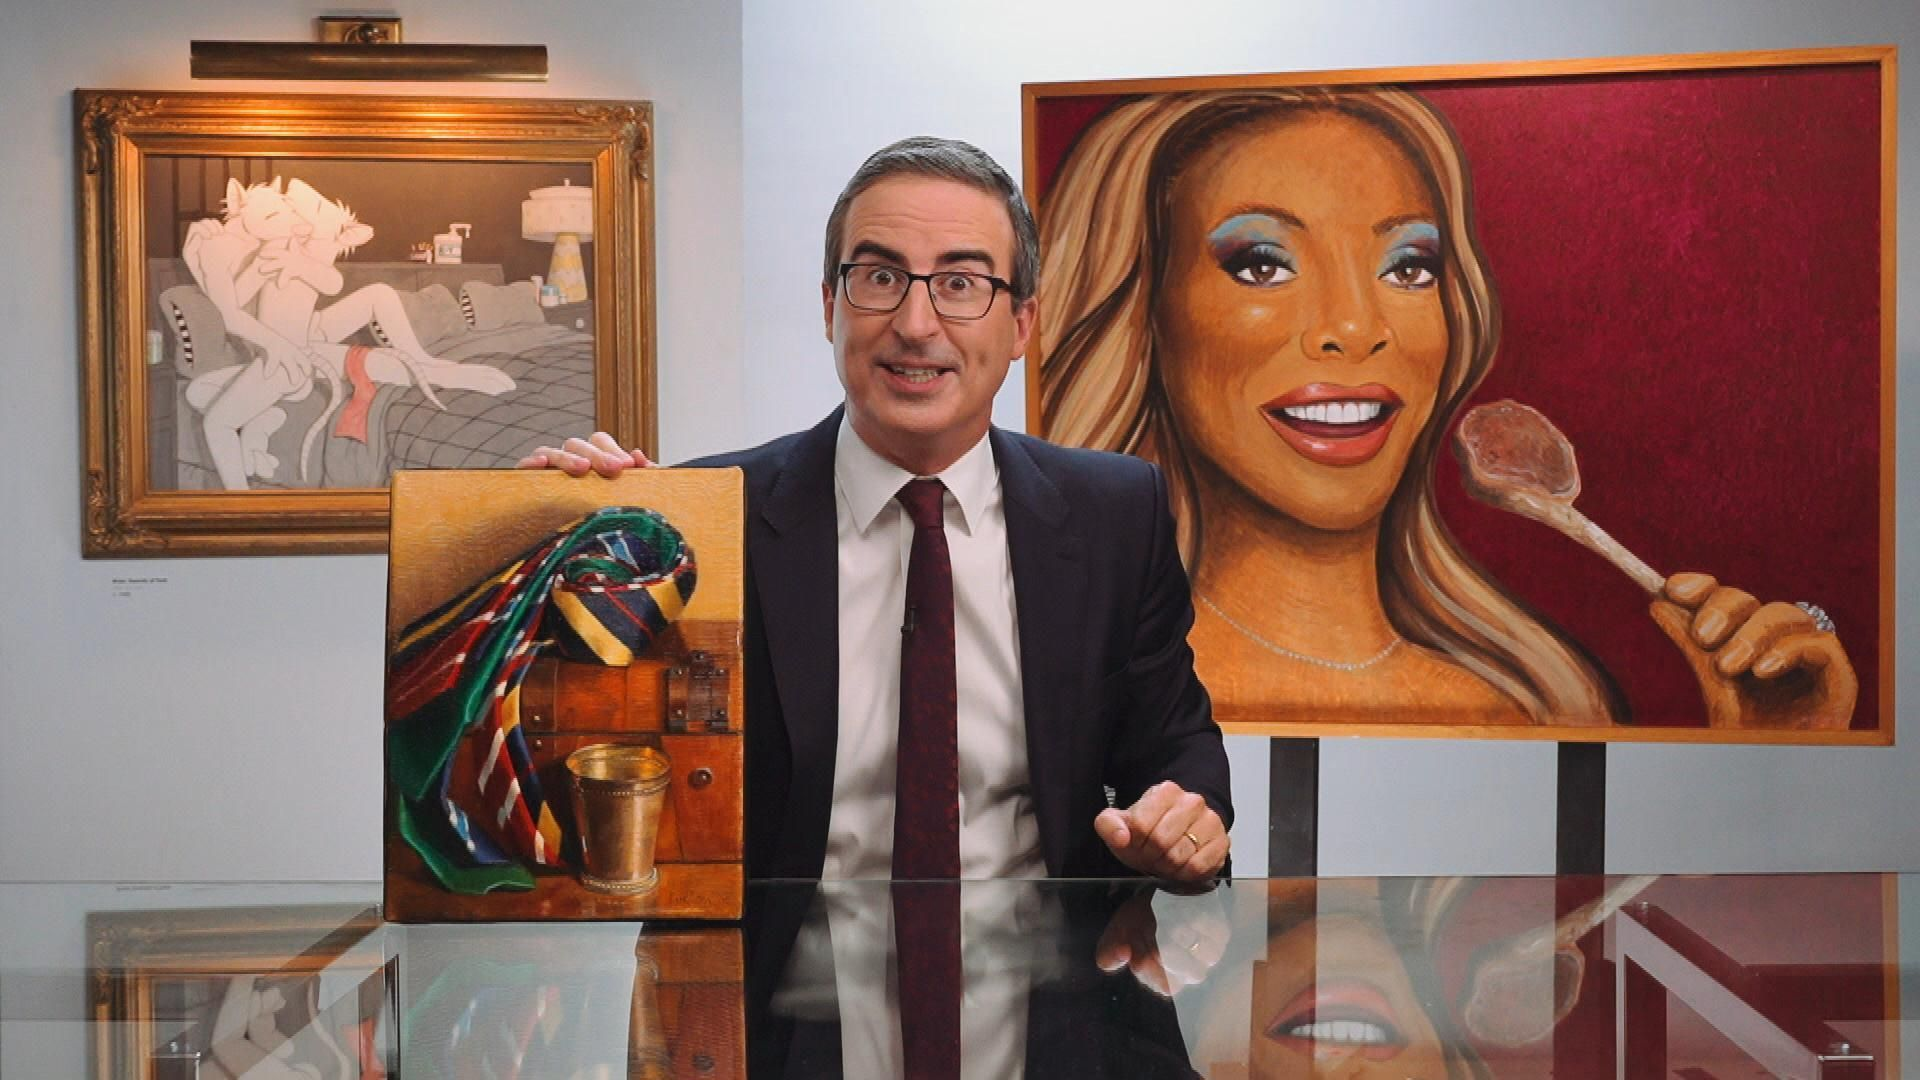 John Oliver is keen to share his art collection with US museums